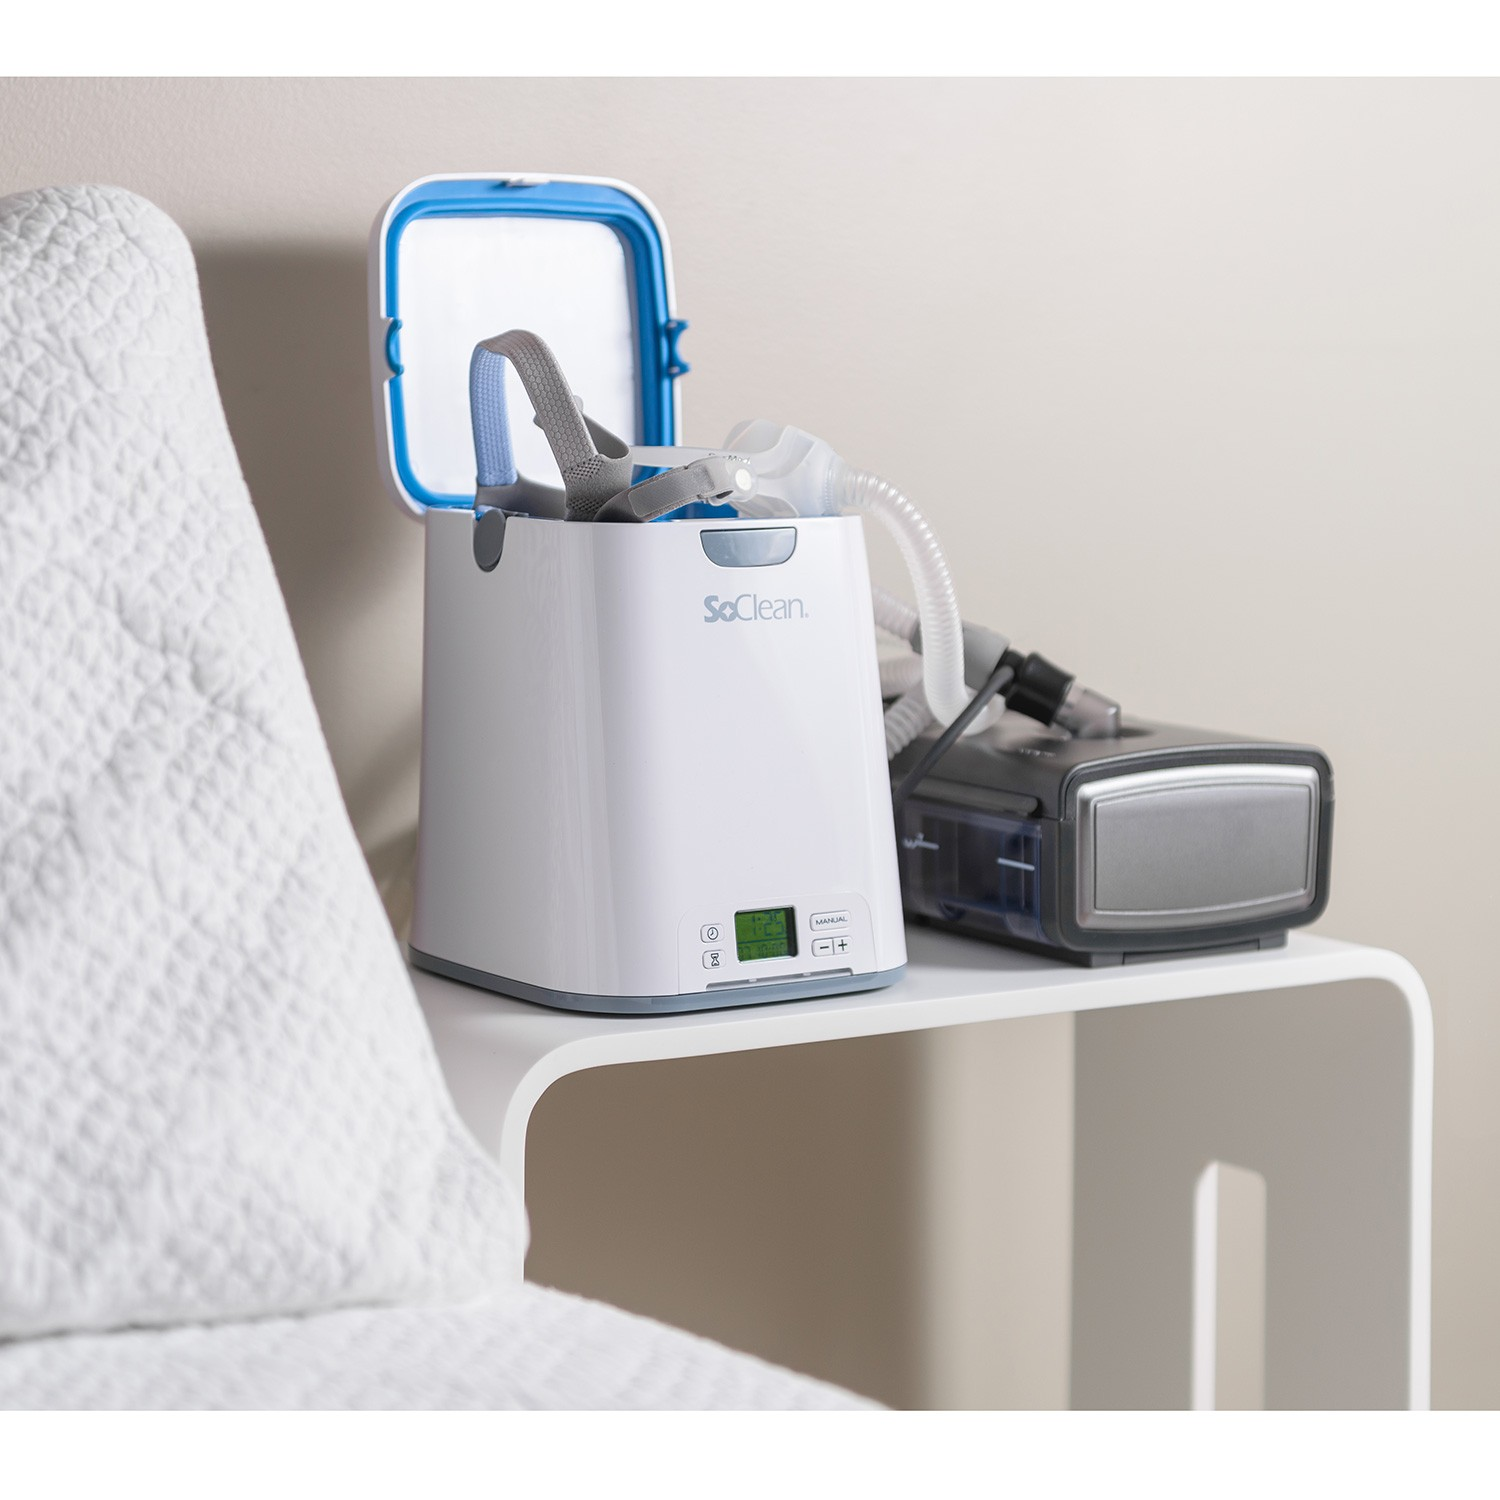 What is a CPAP Cleaner? - A CPAP cleaner is a device that sanitizes CPAP equipment.CPAPCleaner.org is a growing resource for CPAP cleaning topics.As we grow, we hope to help sleep apnea suffers determine the best solution for their CPAP cleaning needs.